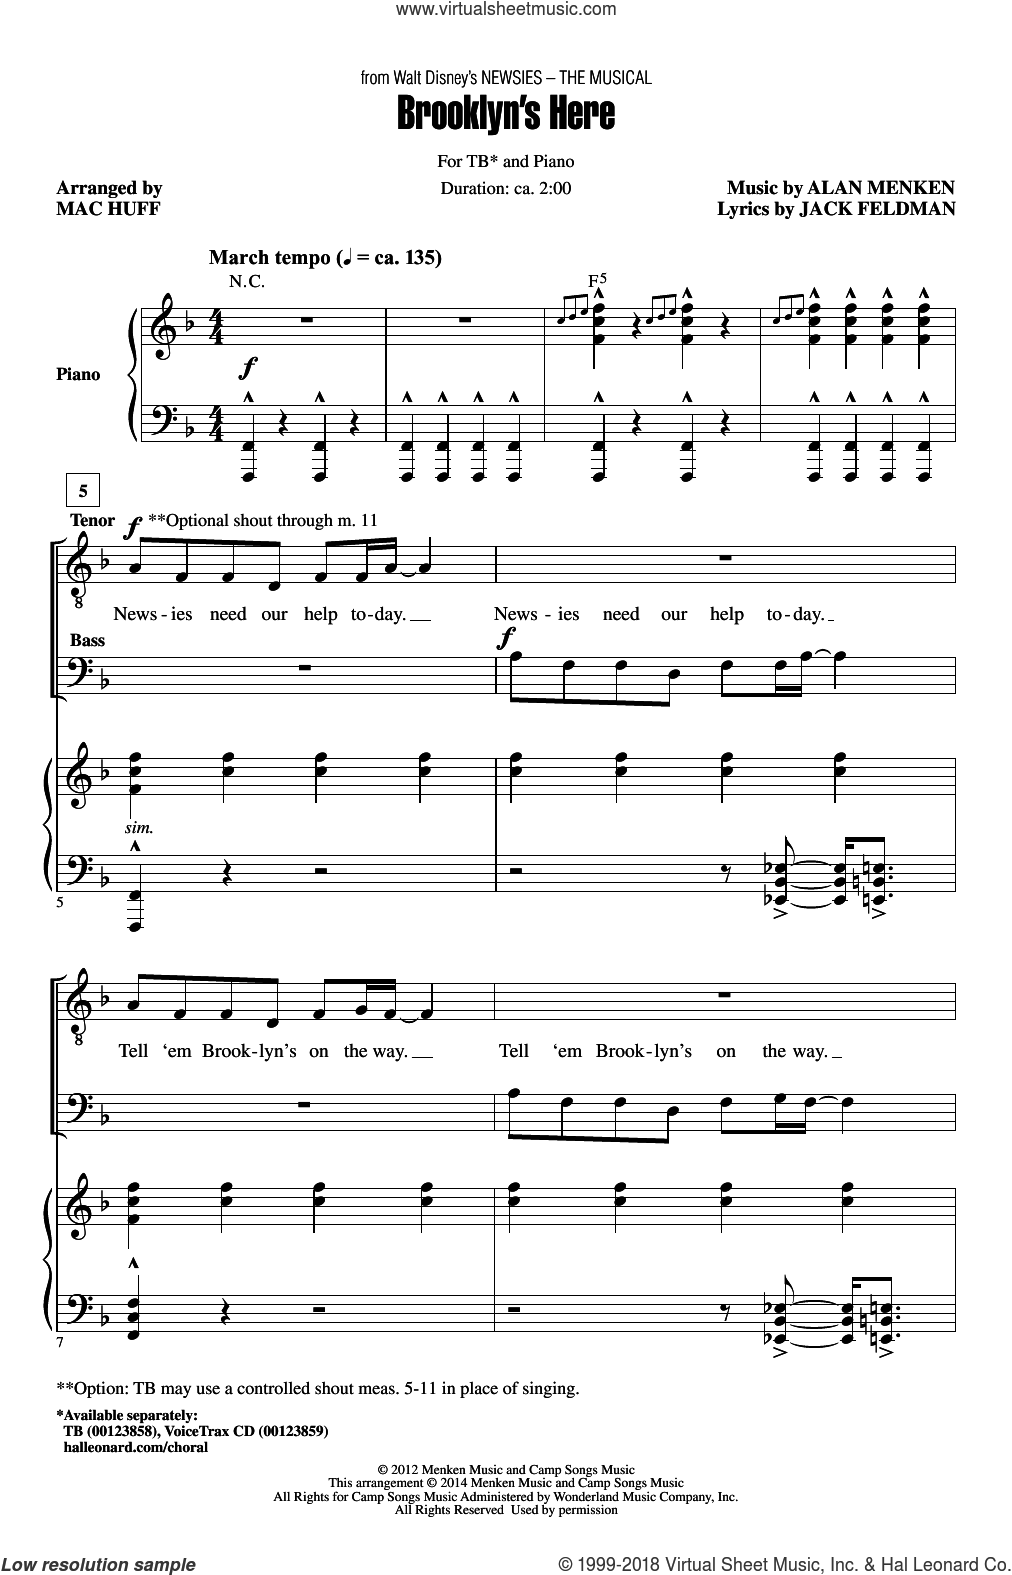 Brooklyn's Here sheet music for choir (TB) by Mac Huff. Score Image Preview.